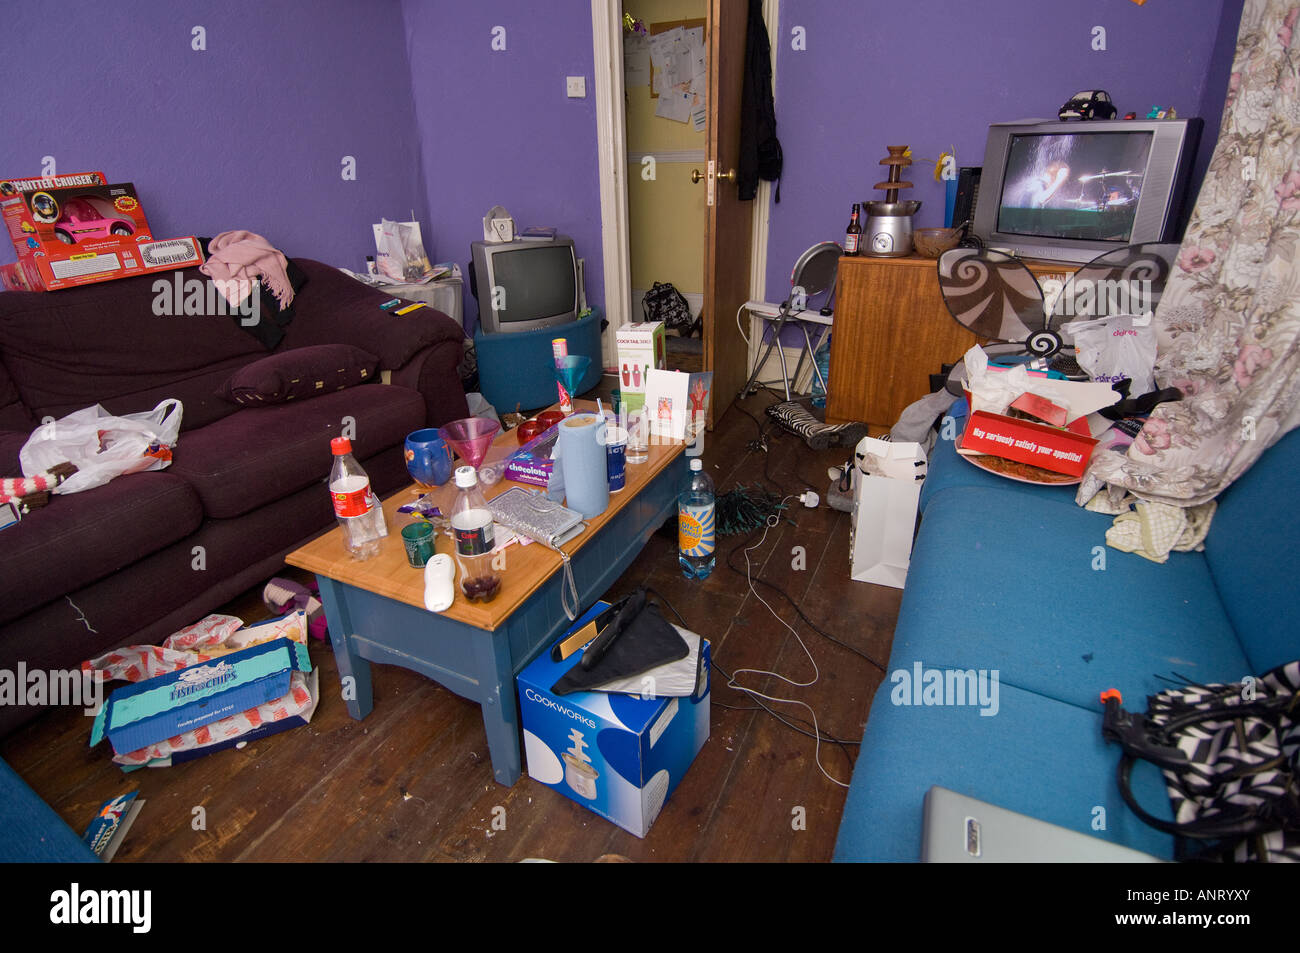 An untidy living room lounge in a student house the morning after a party, UK - Stock Image